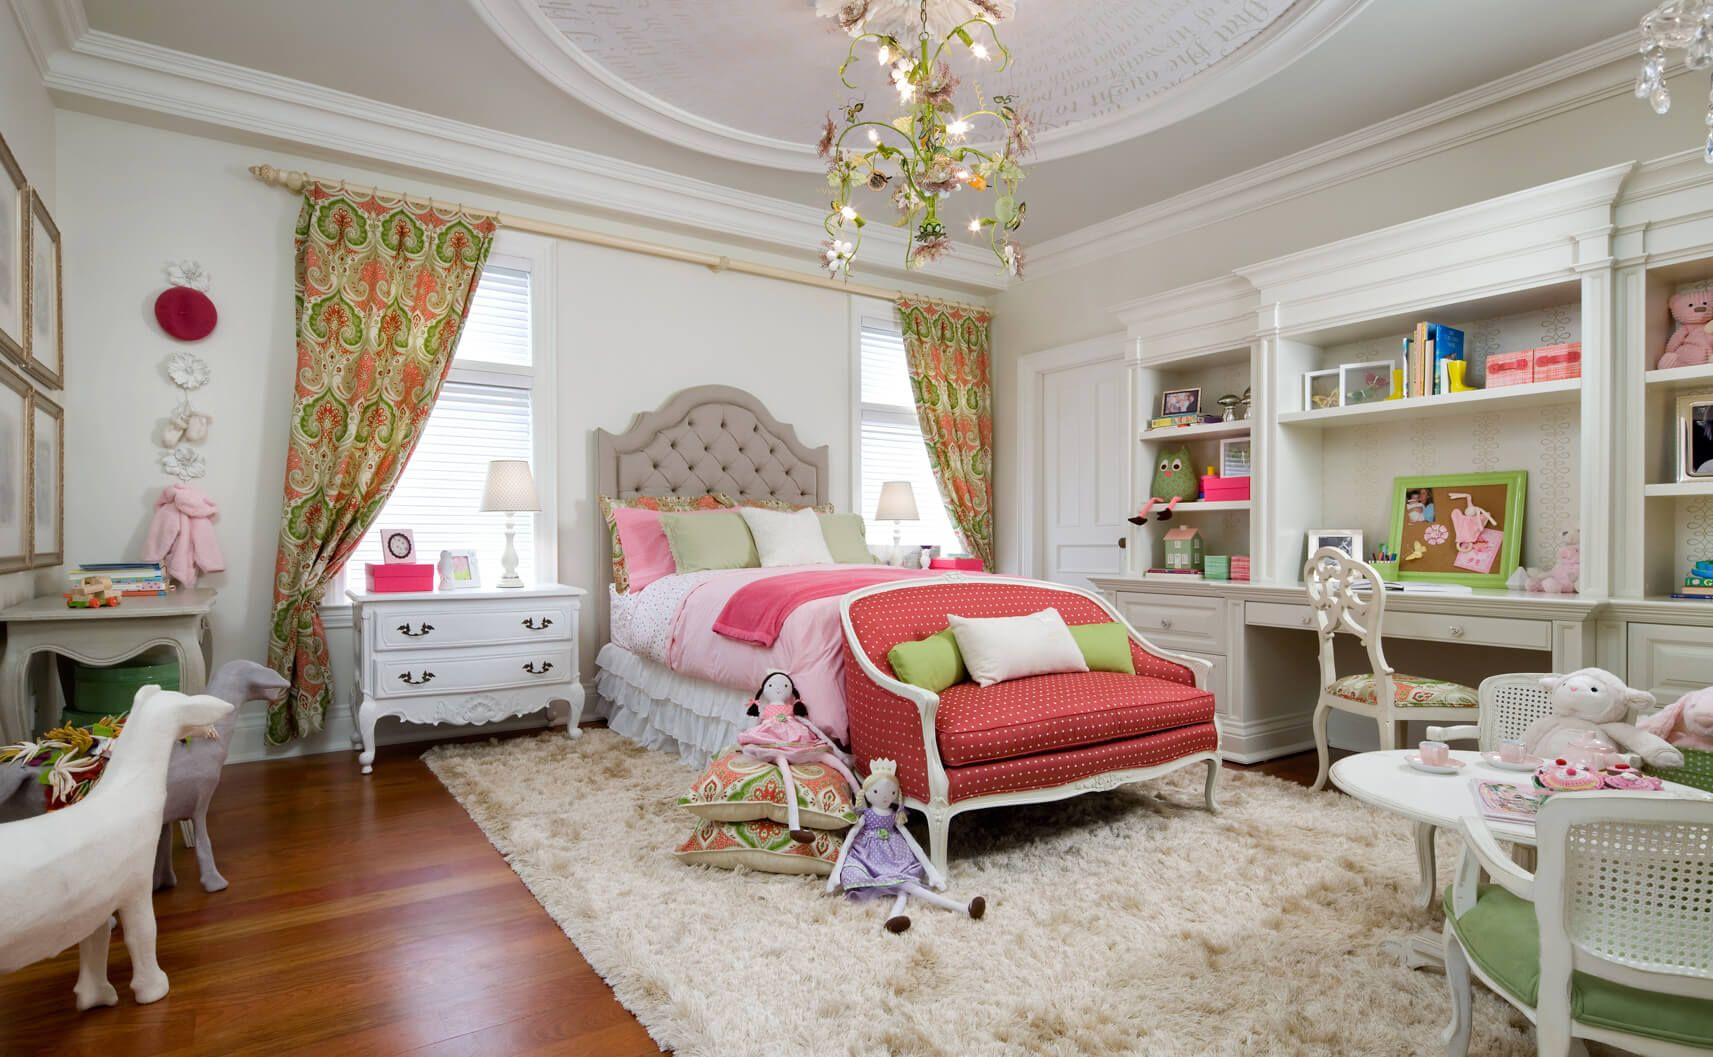 Candice Olson Bedroom Designs Adorable Resplendent Little Girl's Roomcandice Olson Design And Brandon Inspiration